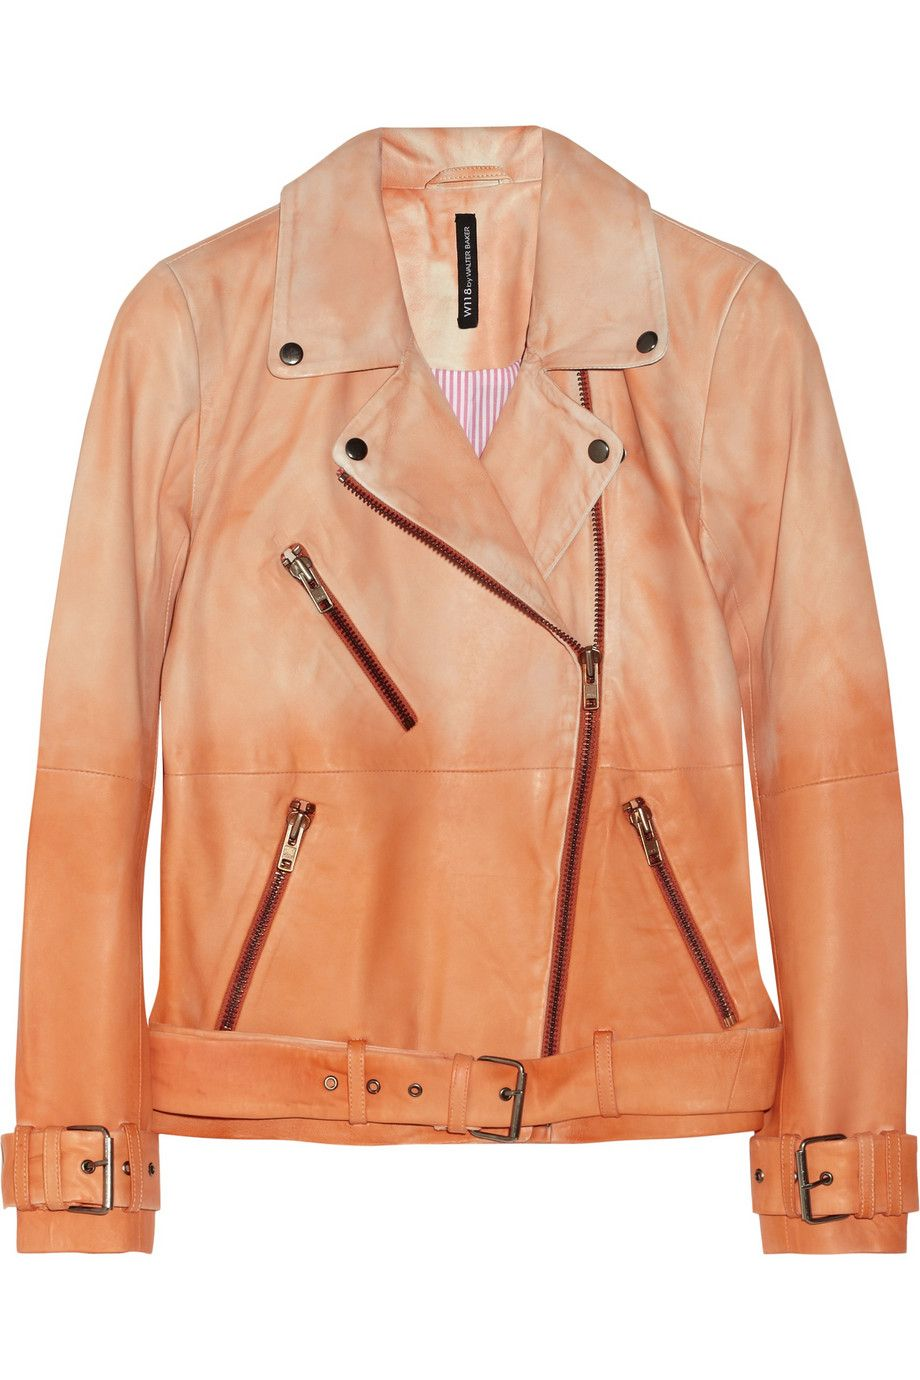 W118 by Walter Baker Evan dégradé leather biker jacket